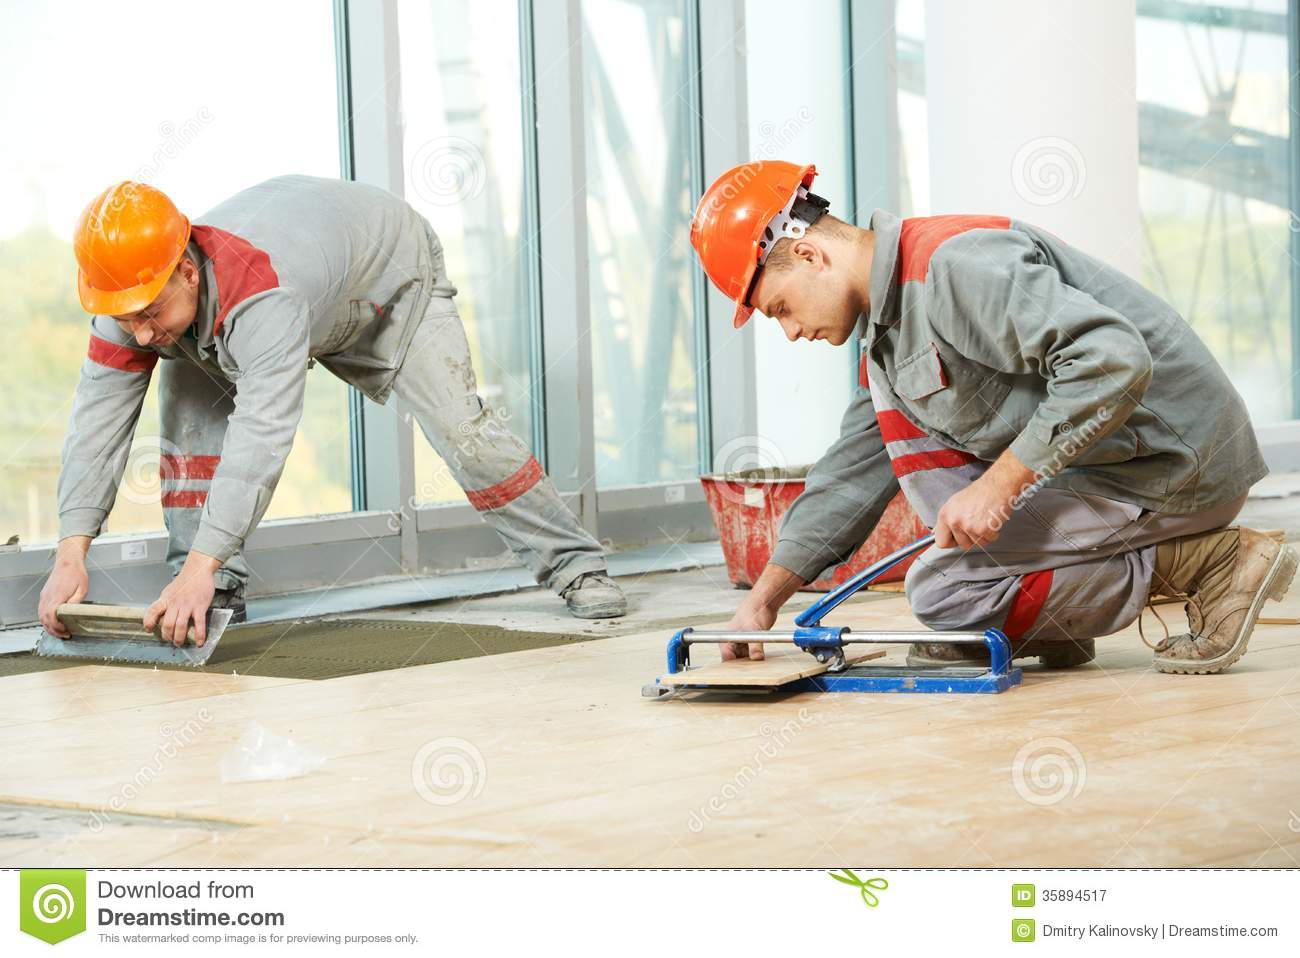 Royalty Free Stock Photography Two Tilers Industrial Floor Tiling Renovation Tiler Builder Worker Installing Tile Repair Work Image35894517 additionally Cf33b8d34fe4baf5 moreover 601bc5 furthermore Stock Photo Model Home Interior Design Image2061280 likewise 14610. on decorating floor plans